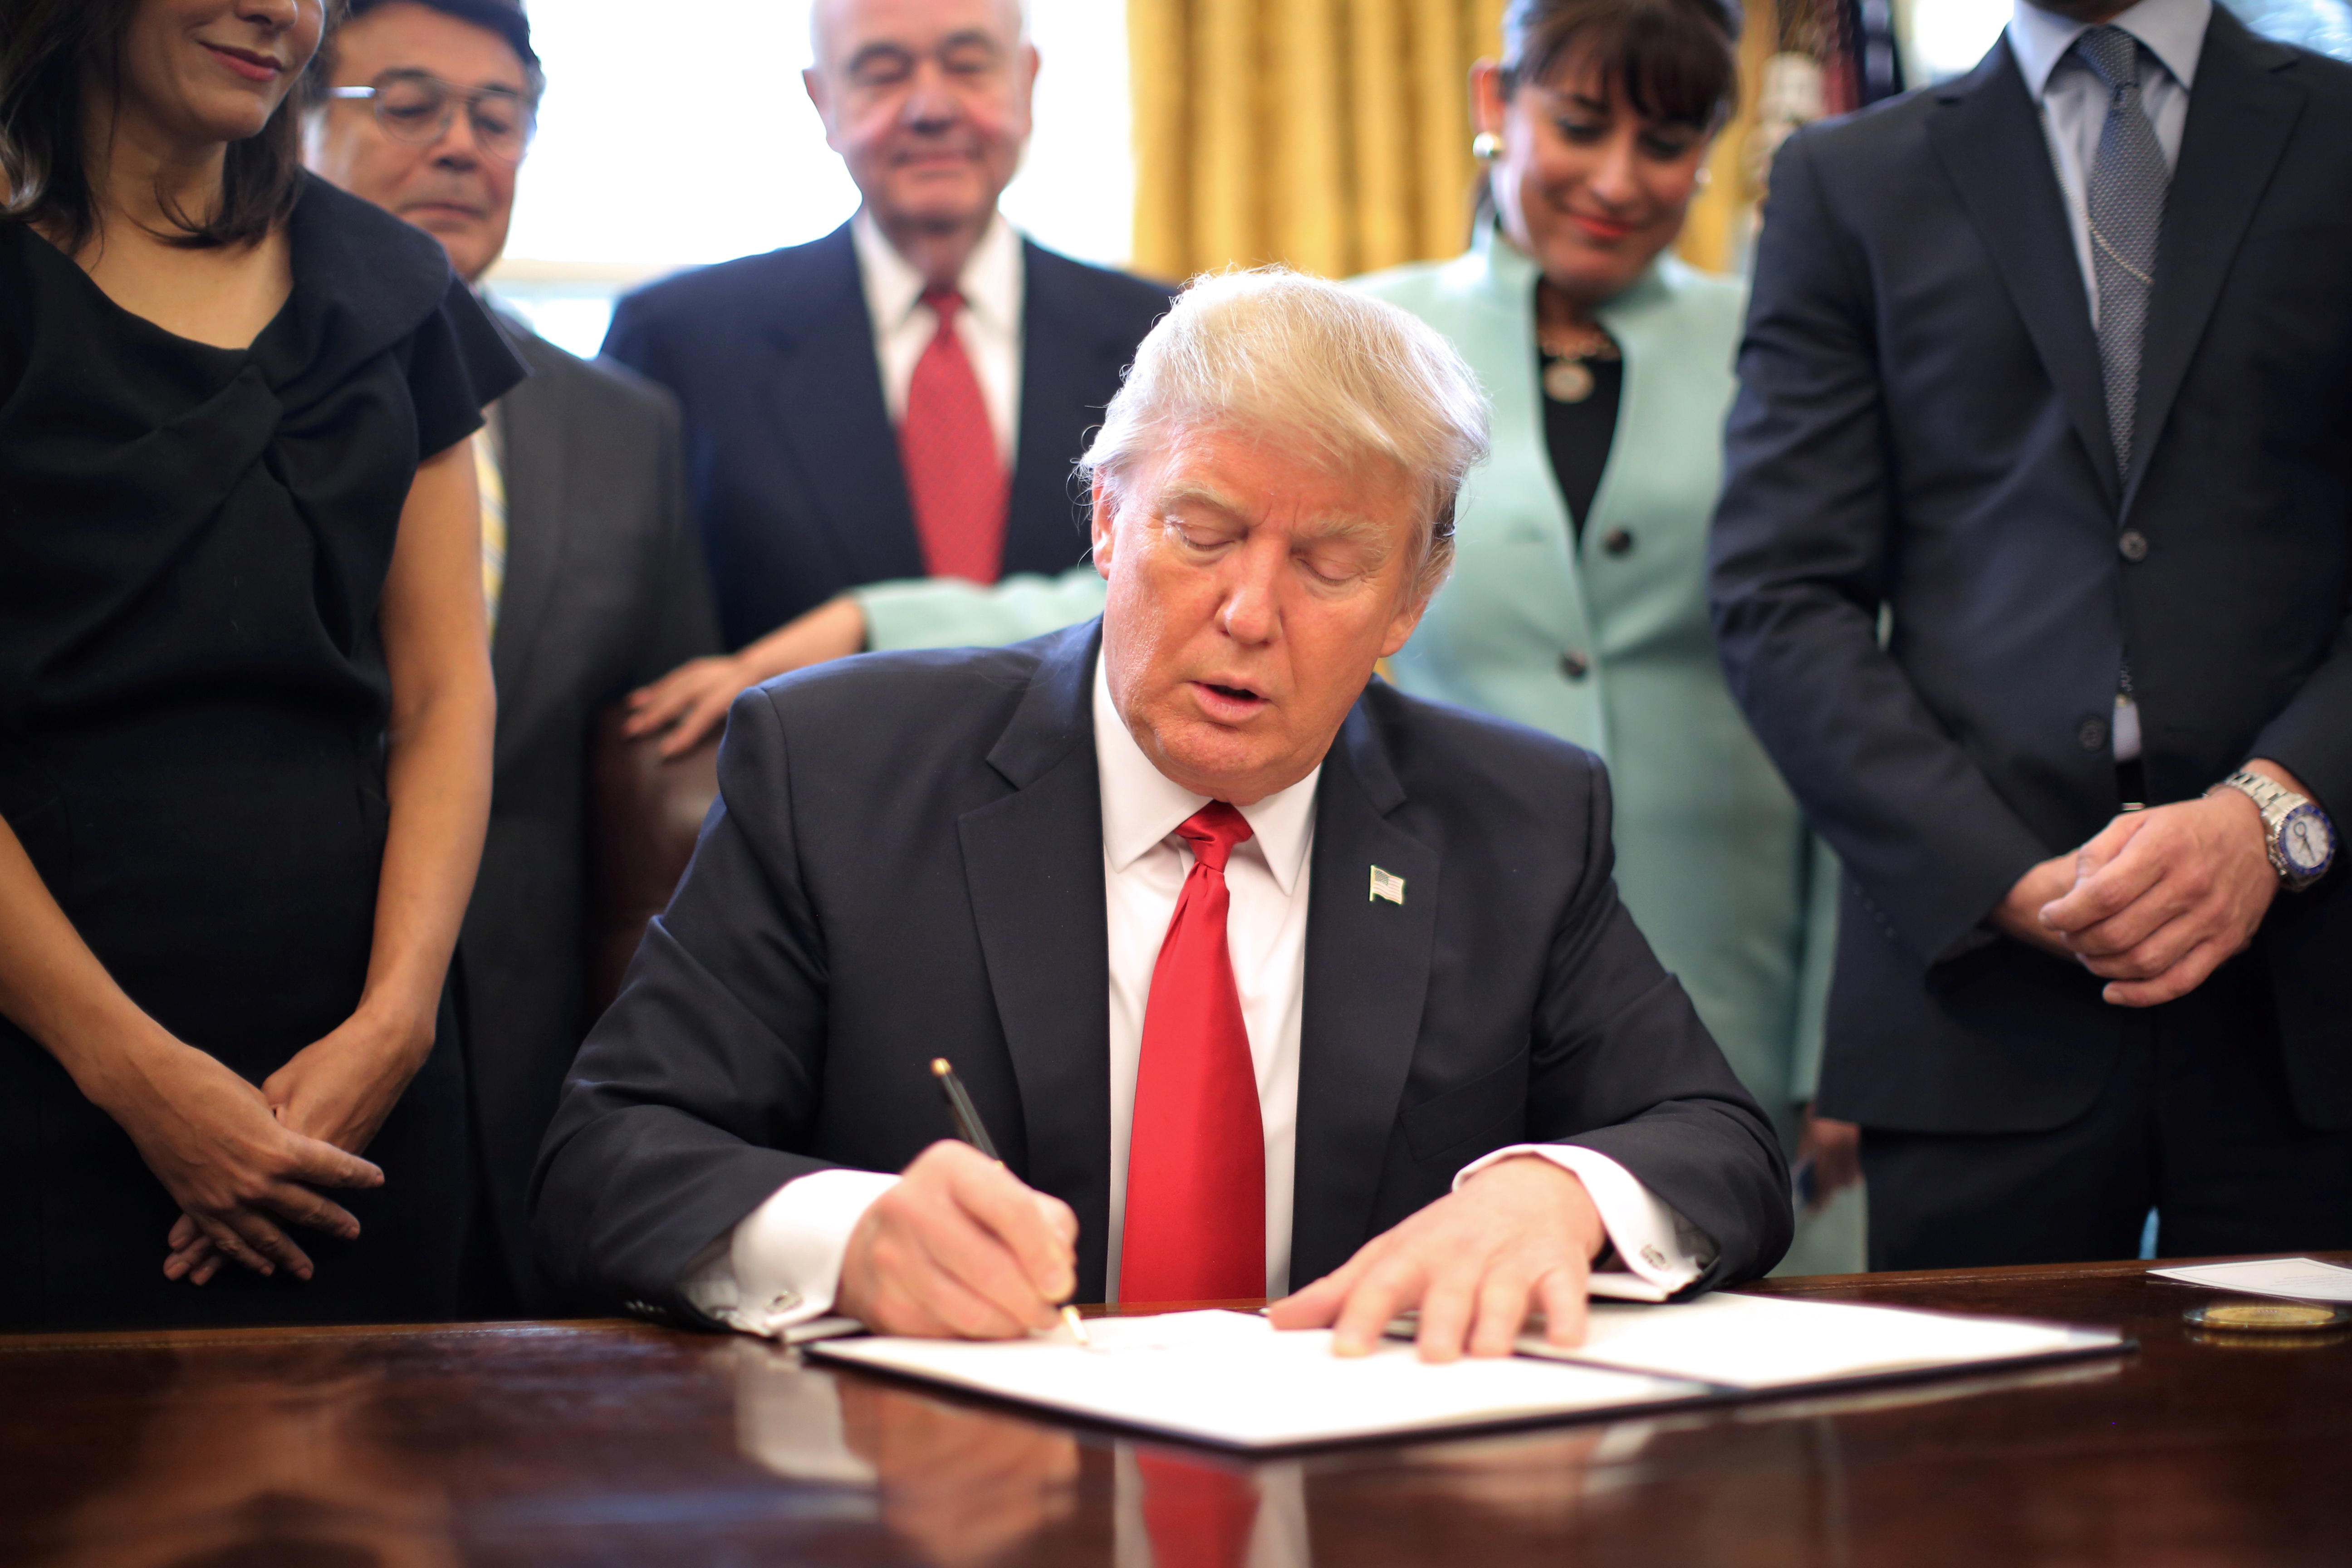 U.S. President Donald Trump signs an executive order cutting regulations, accompanied by small business leaders at the Oval Office of the White House in Washington U.S.